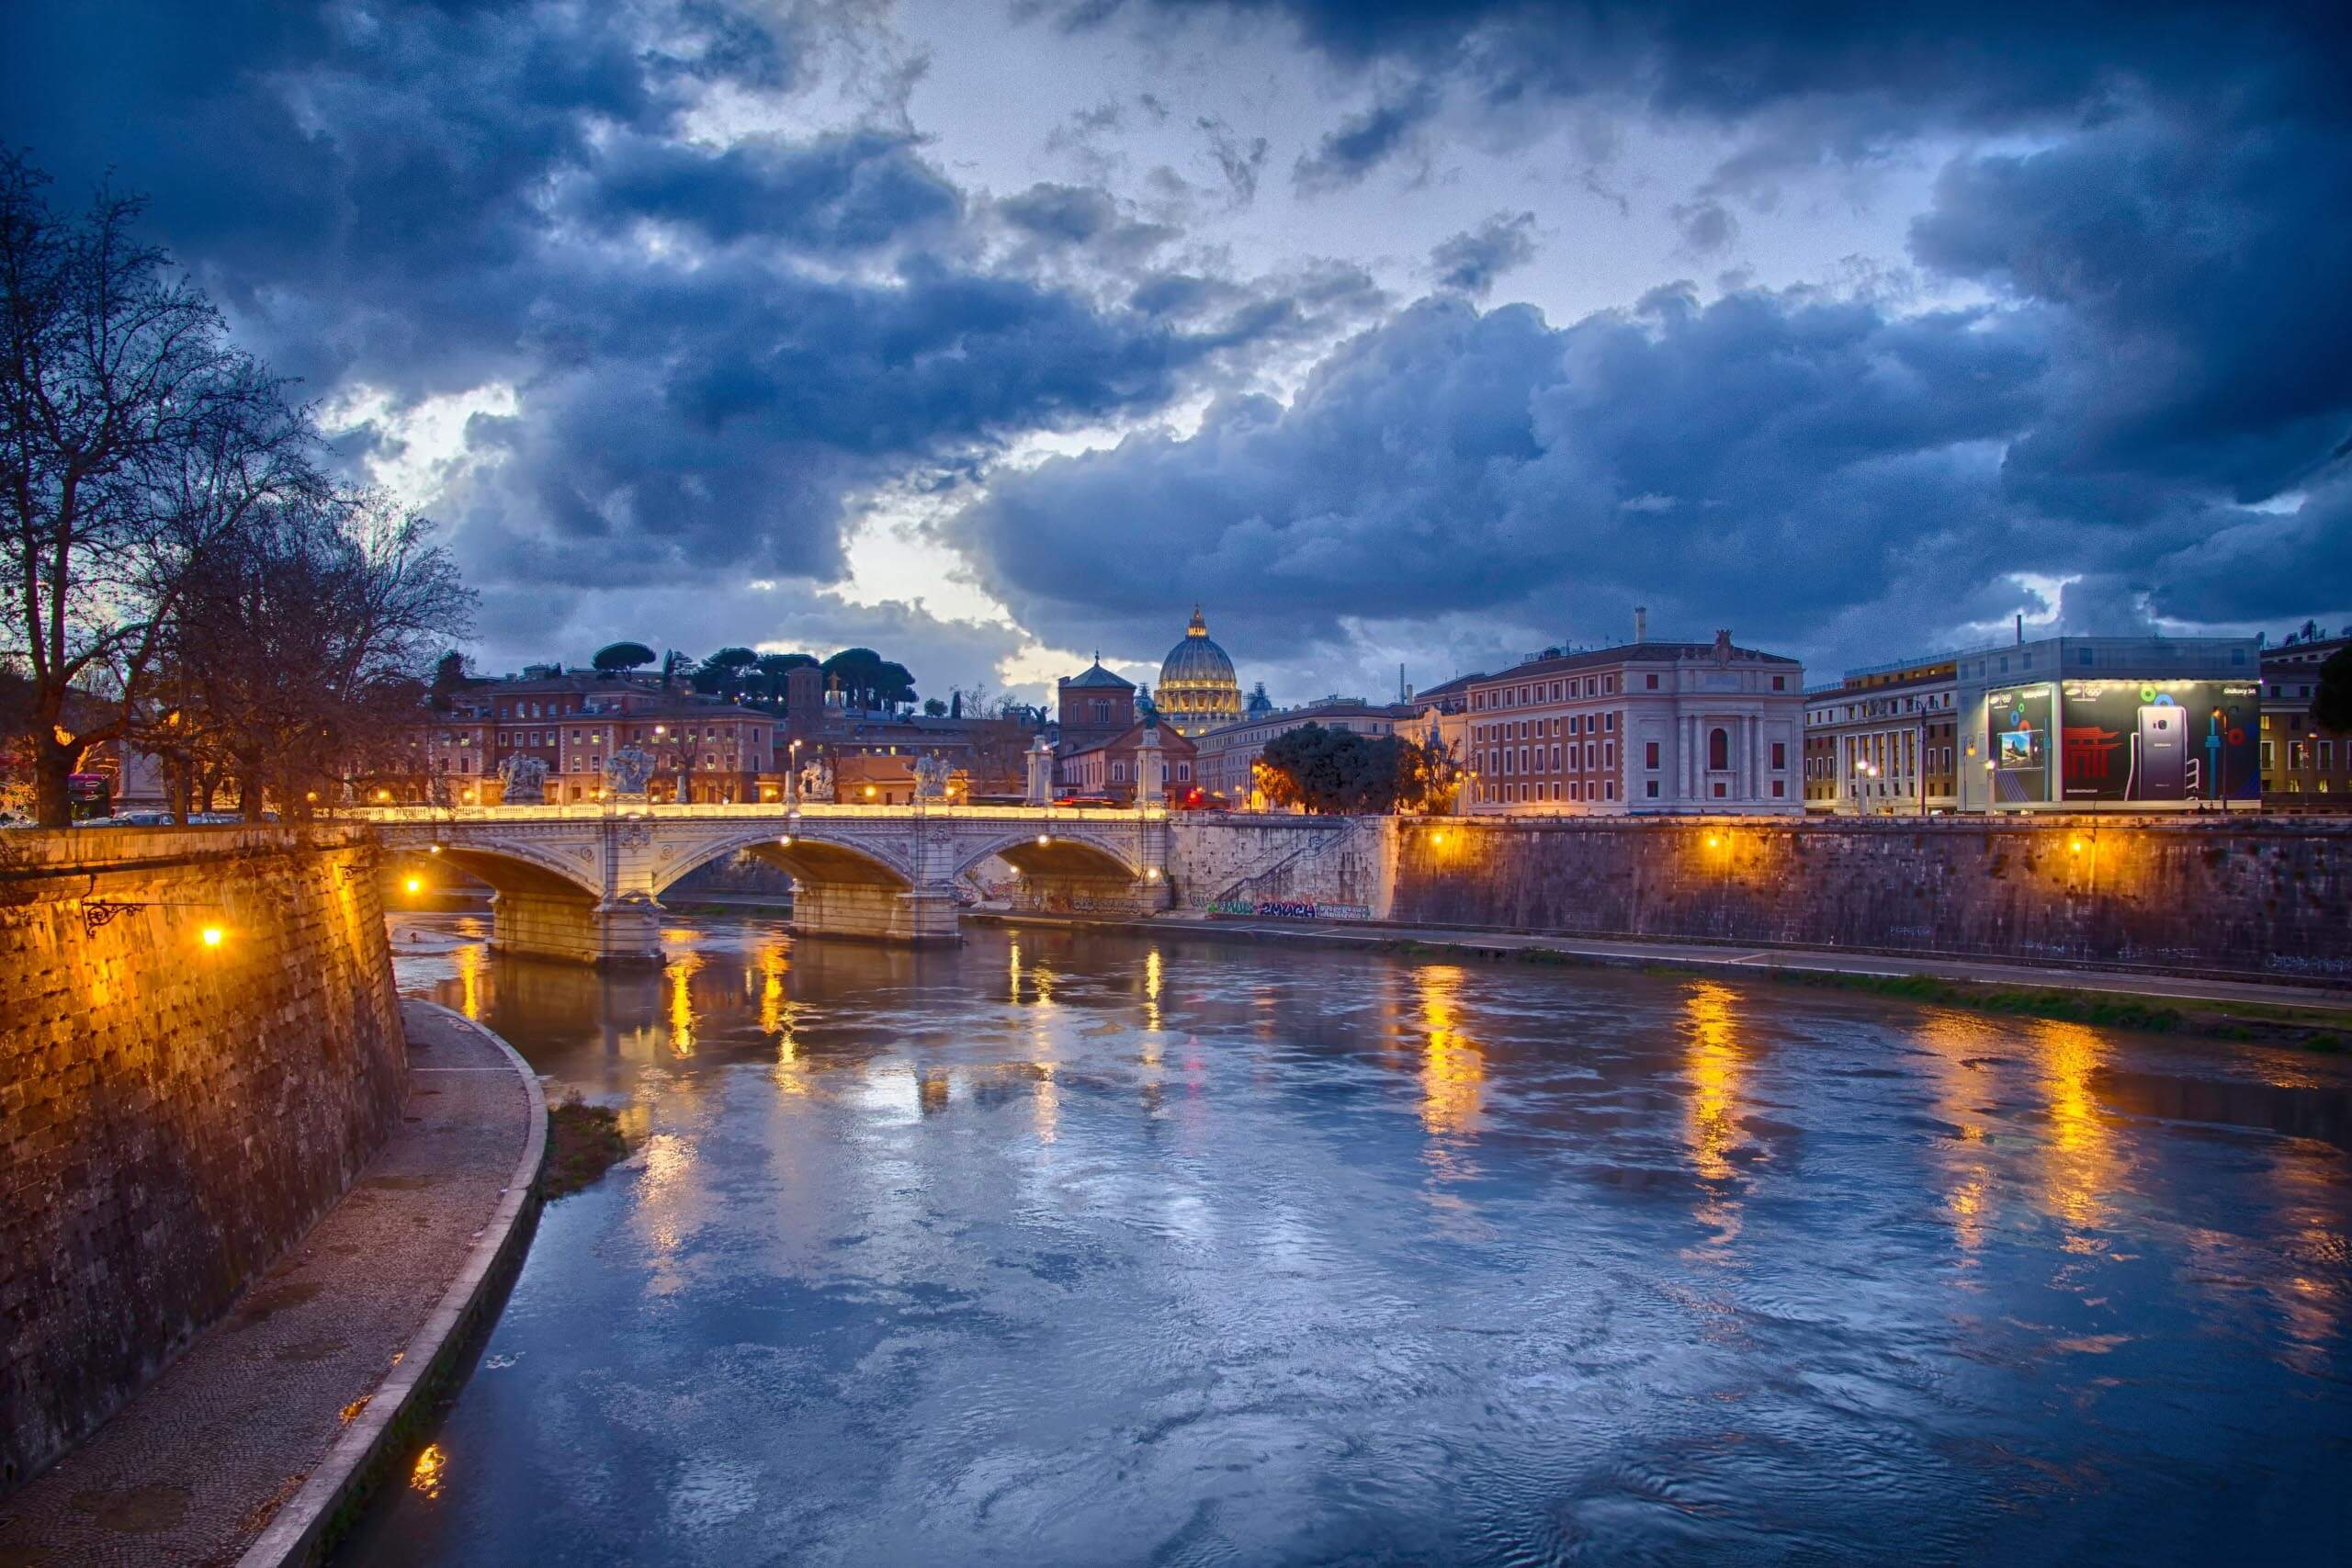 Shot of Rome with bridge and river. Photo by Christian Nordmark on Unsplash